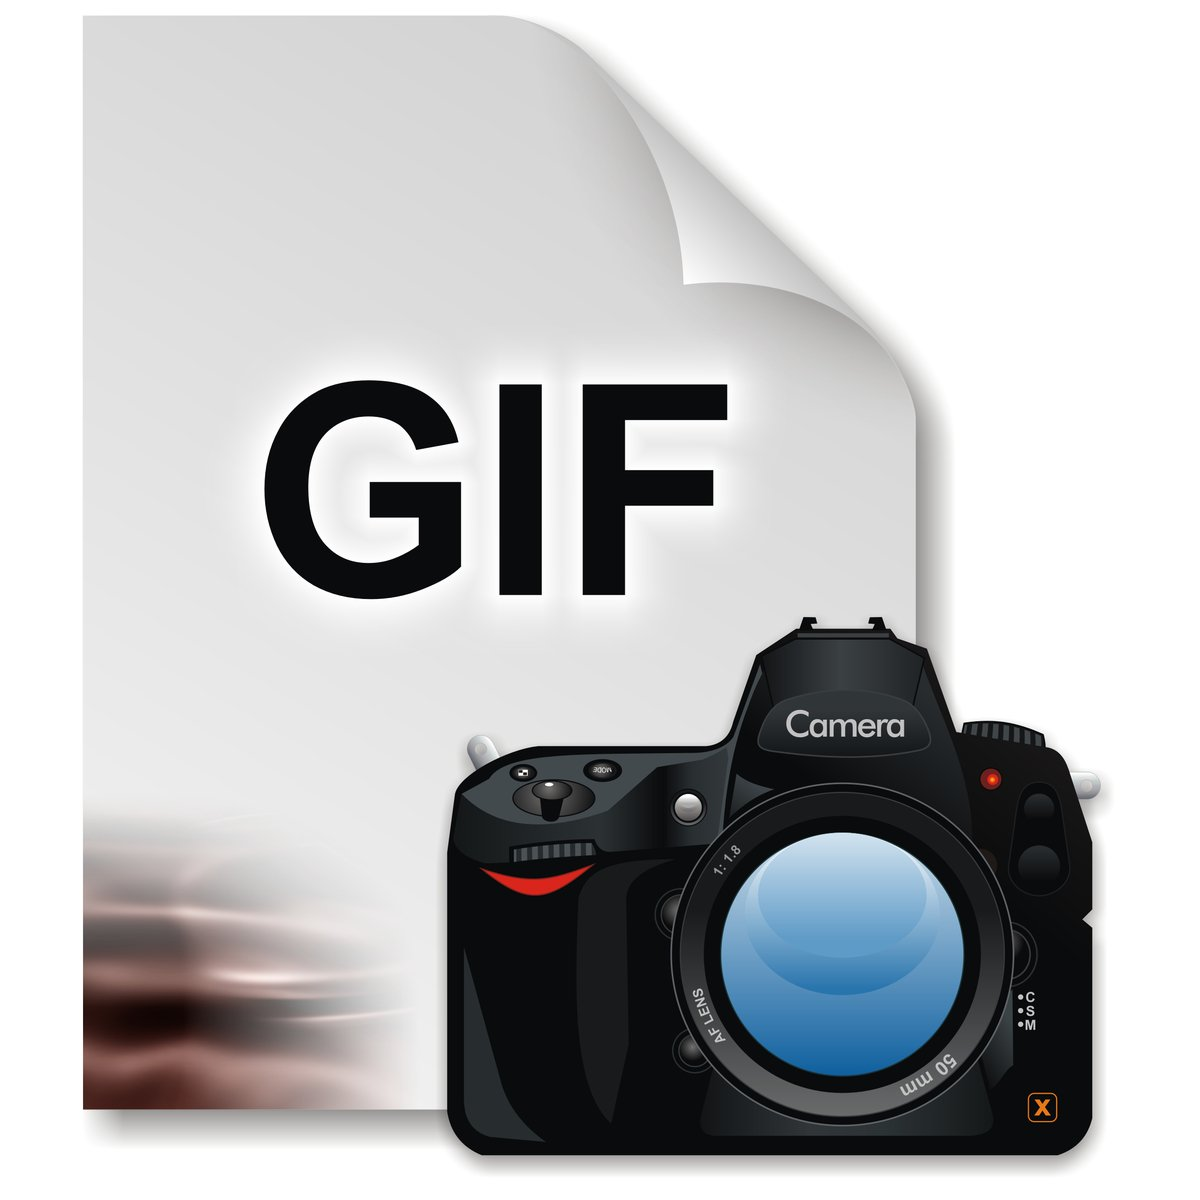 Free pic file icon Stock Photo - FreeImages.com